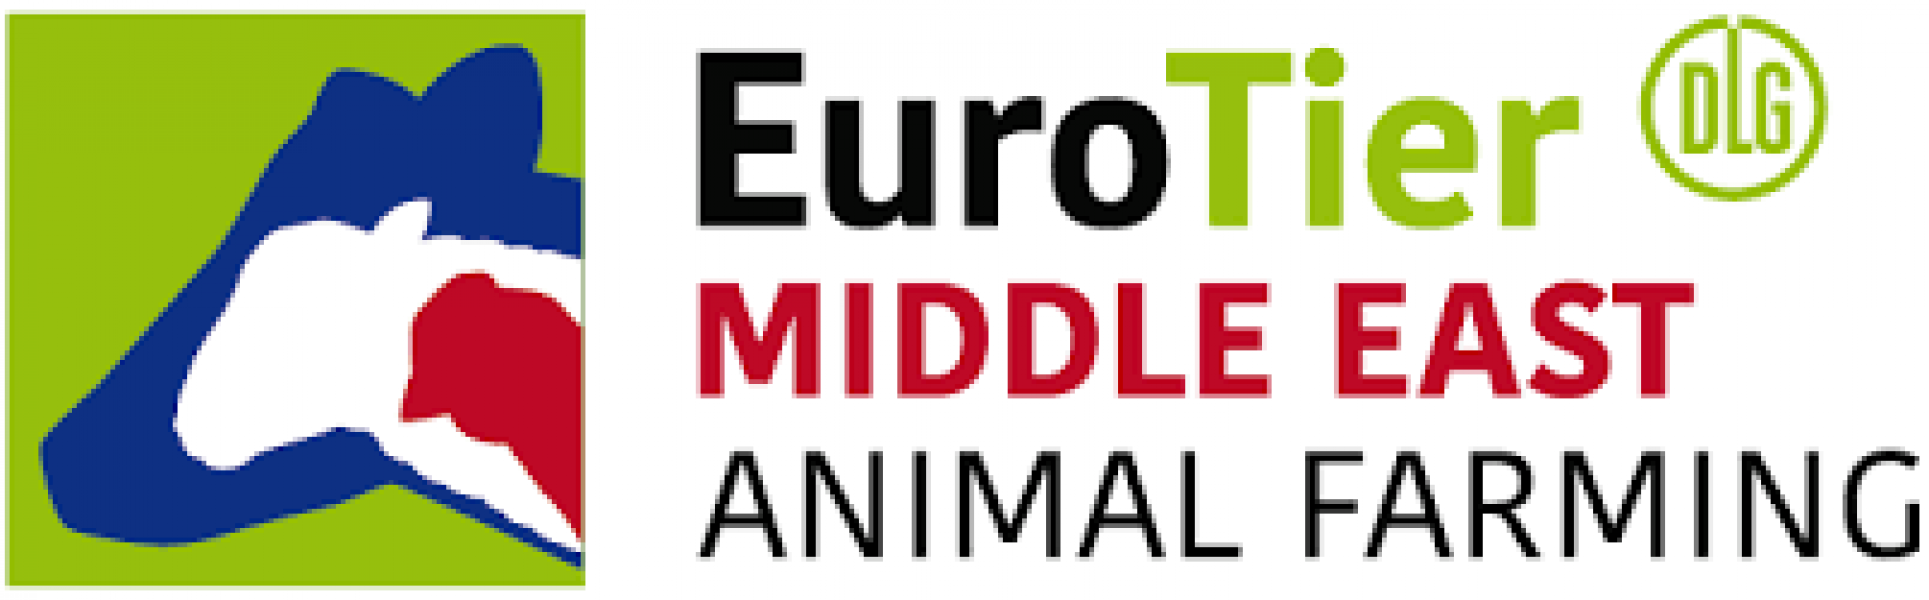 Logotipo de EuroTier Middle East